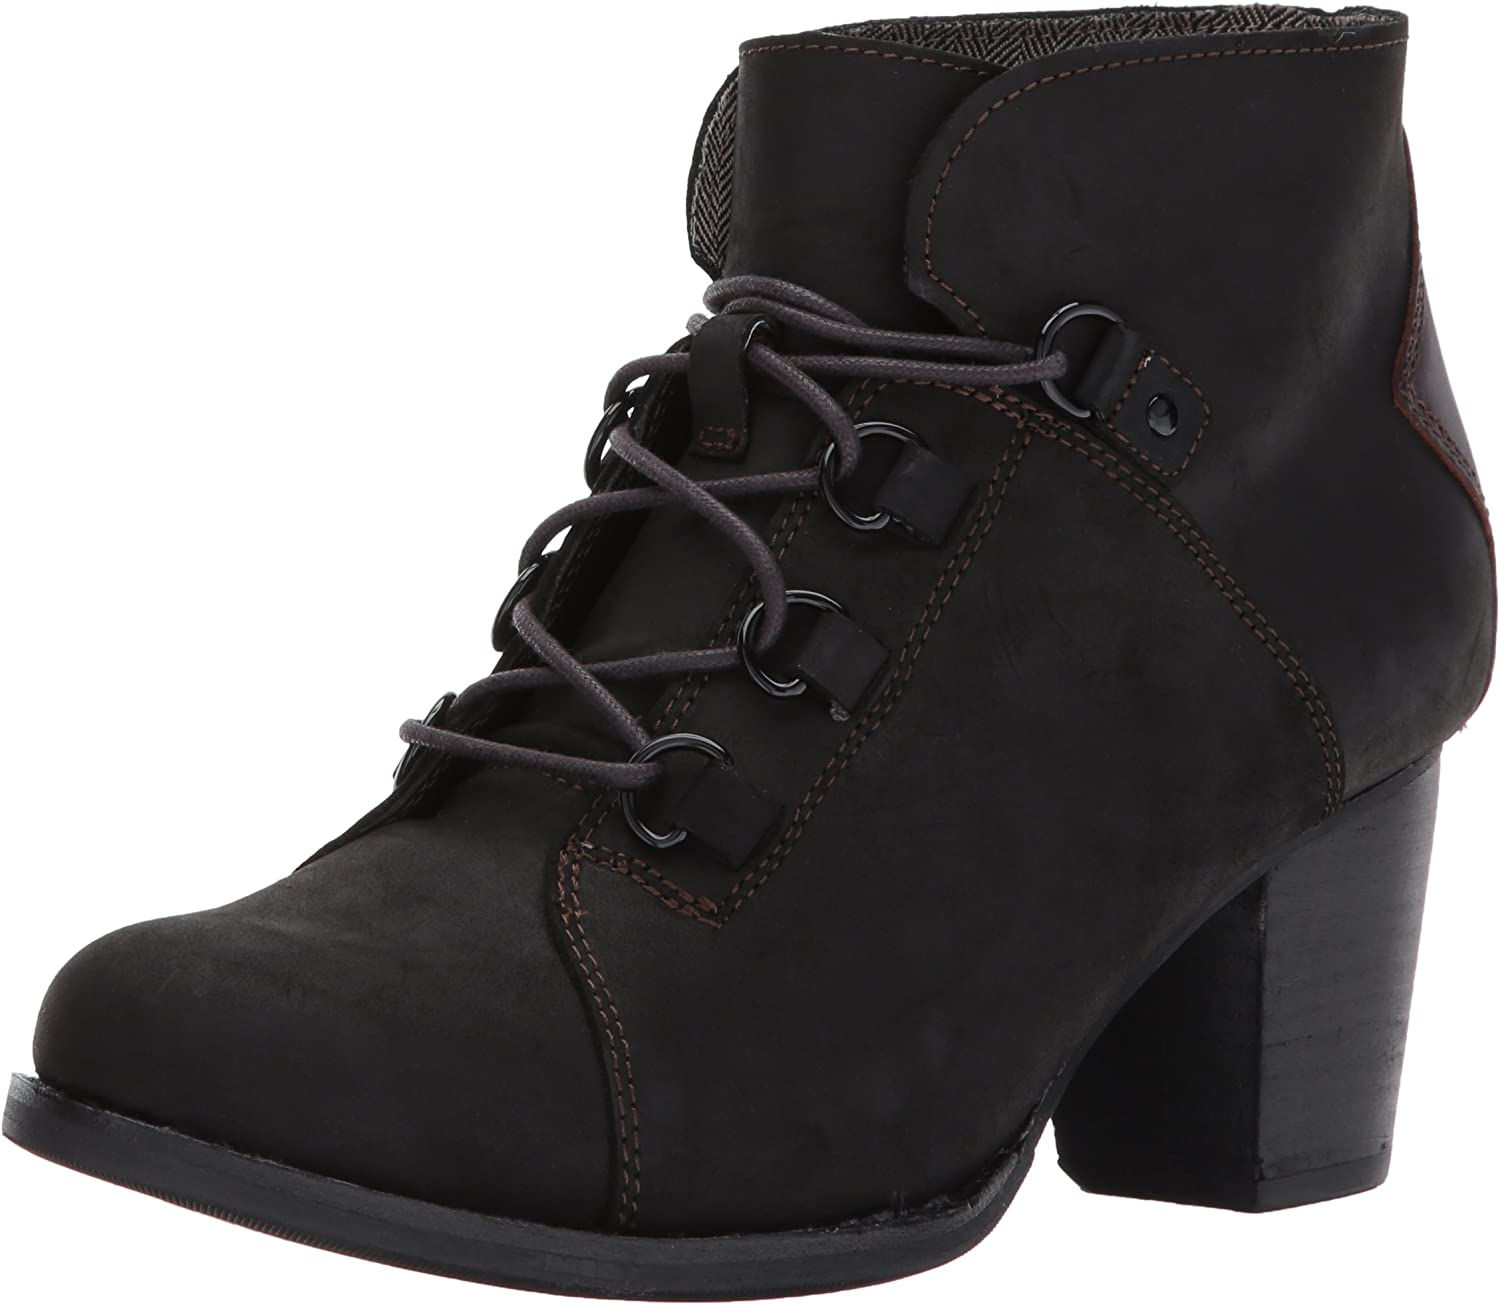 Caterpillar Women's Arbor Waterproof Lace up Bootie with Stacked Heel Ankle Boot